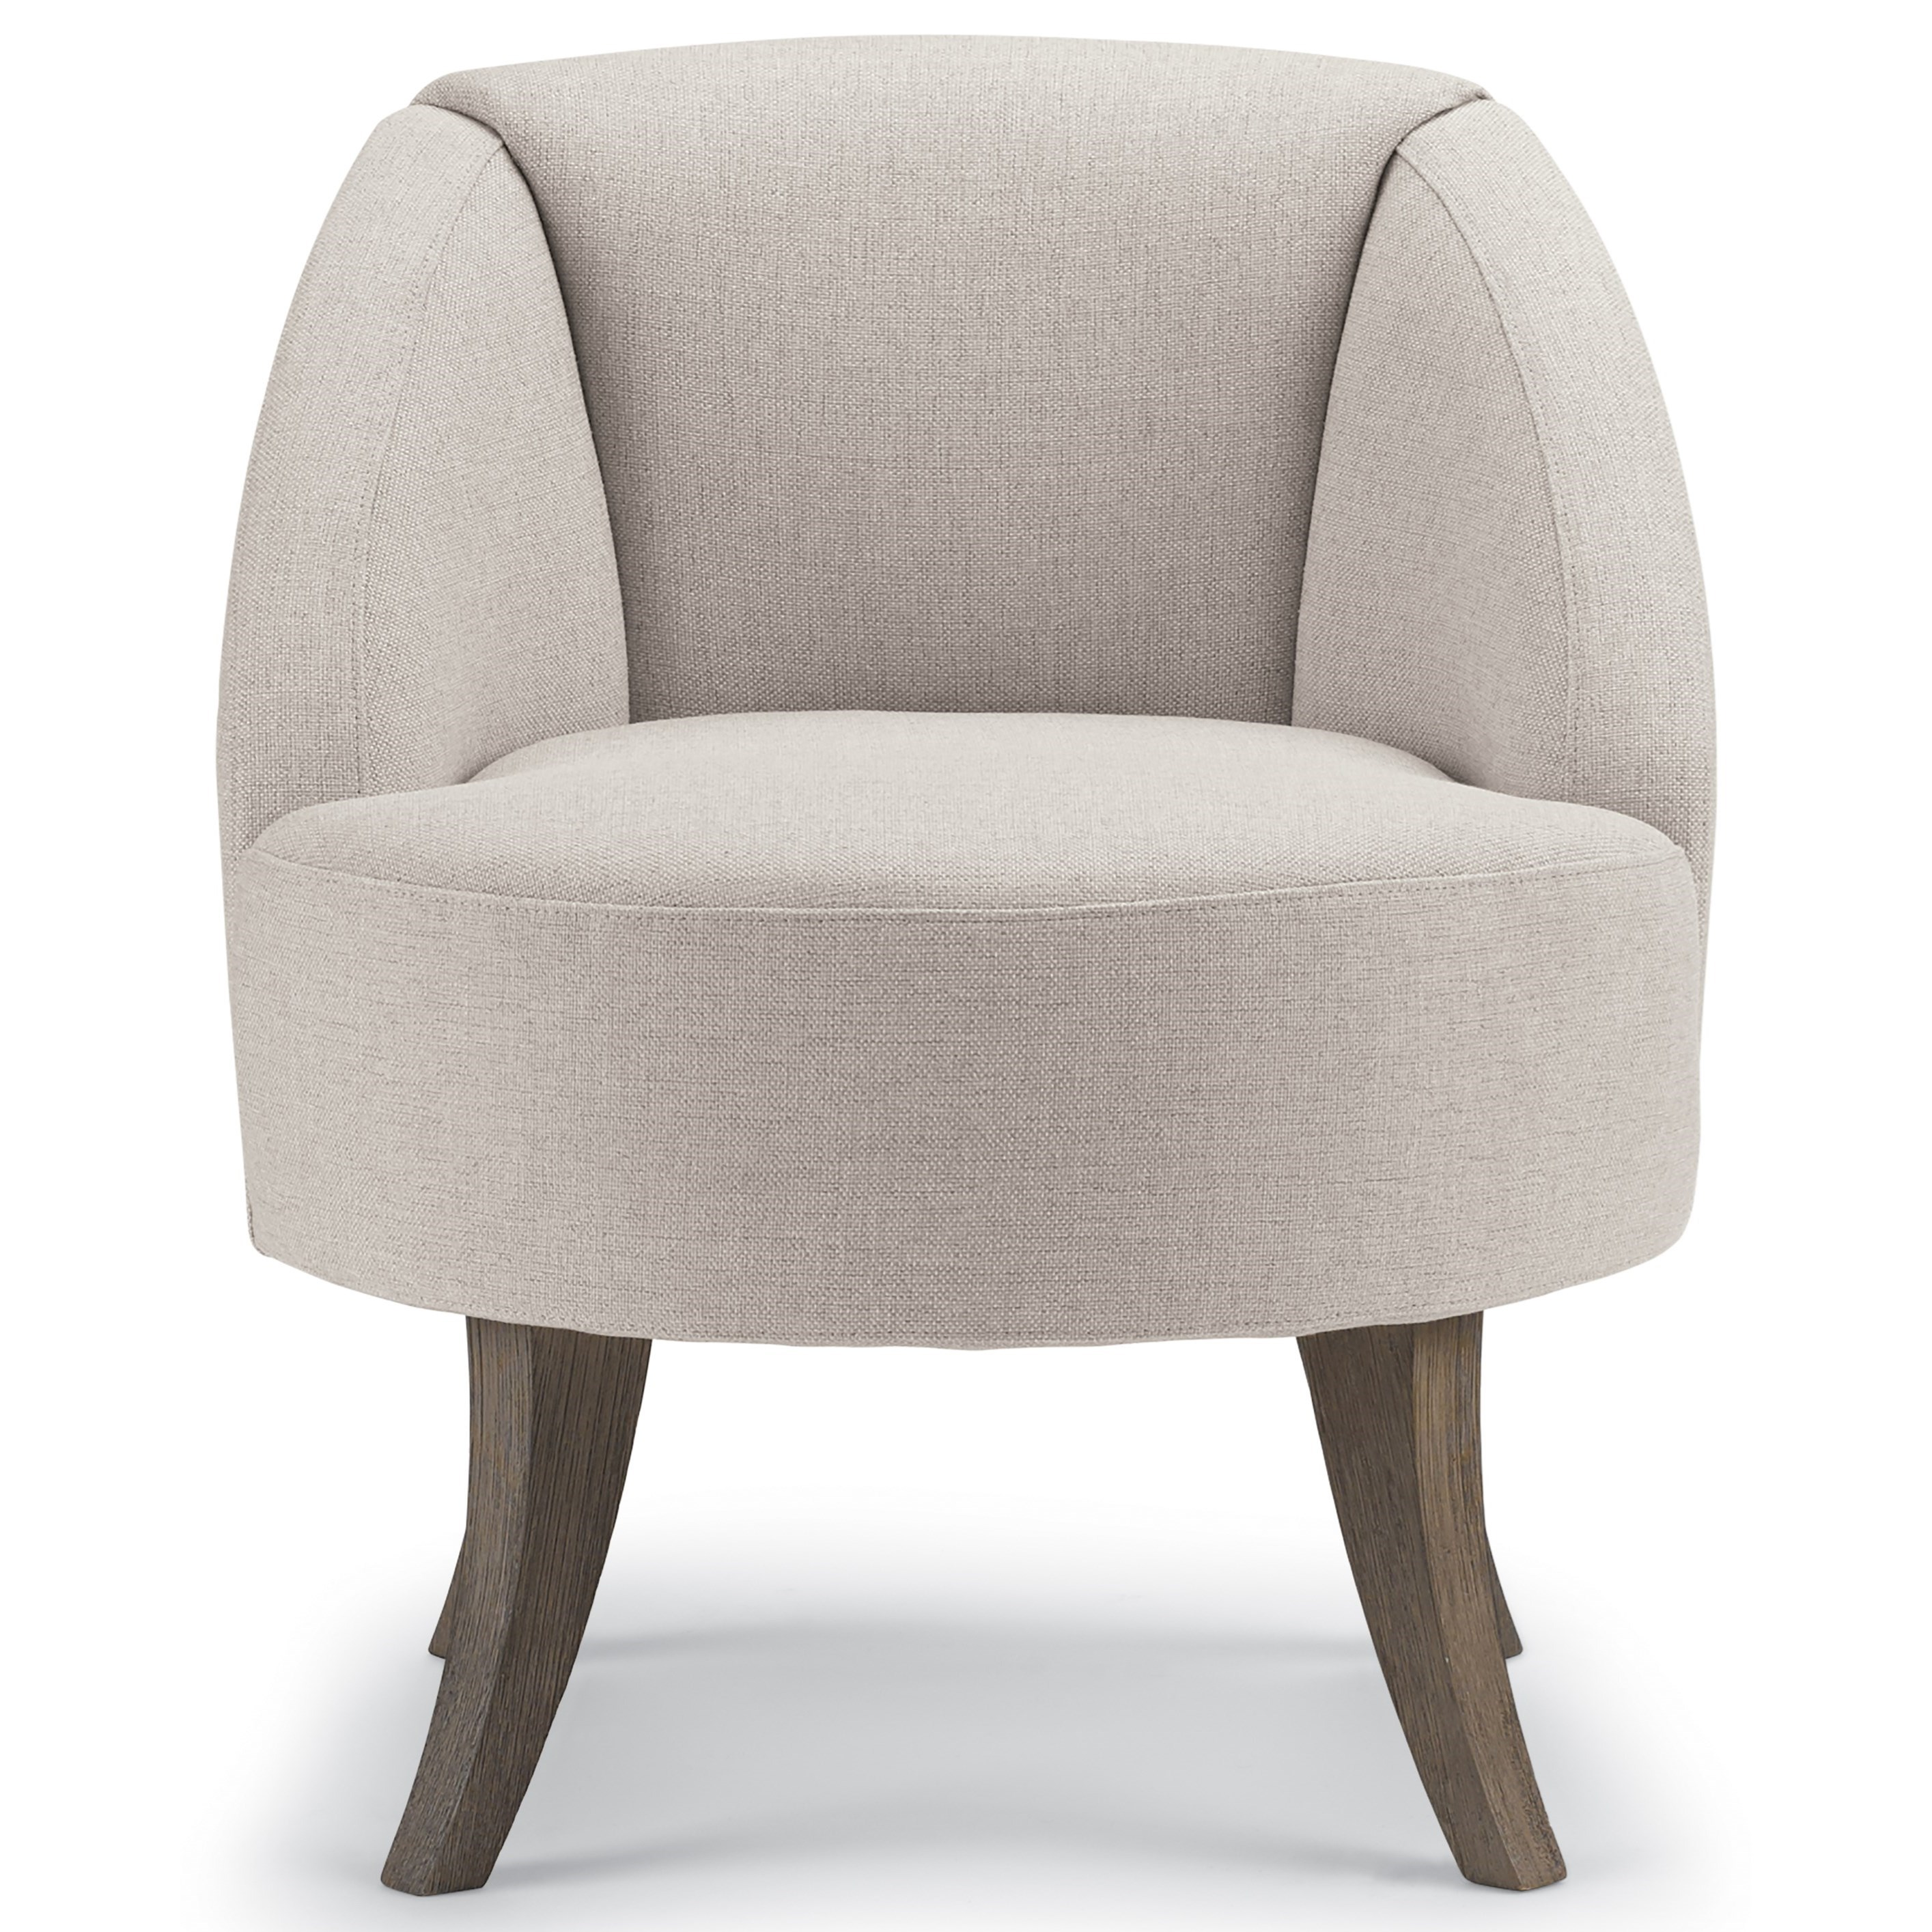 Best Xpress - Hylant Swivel Barrel Chair by Best Home Furnishings at Best Home Furnishings